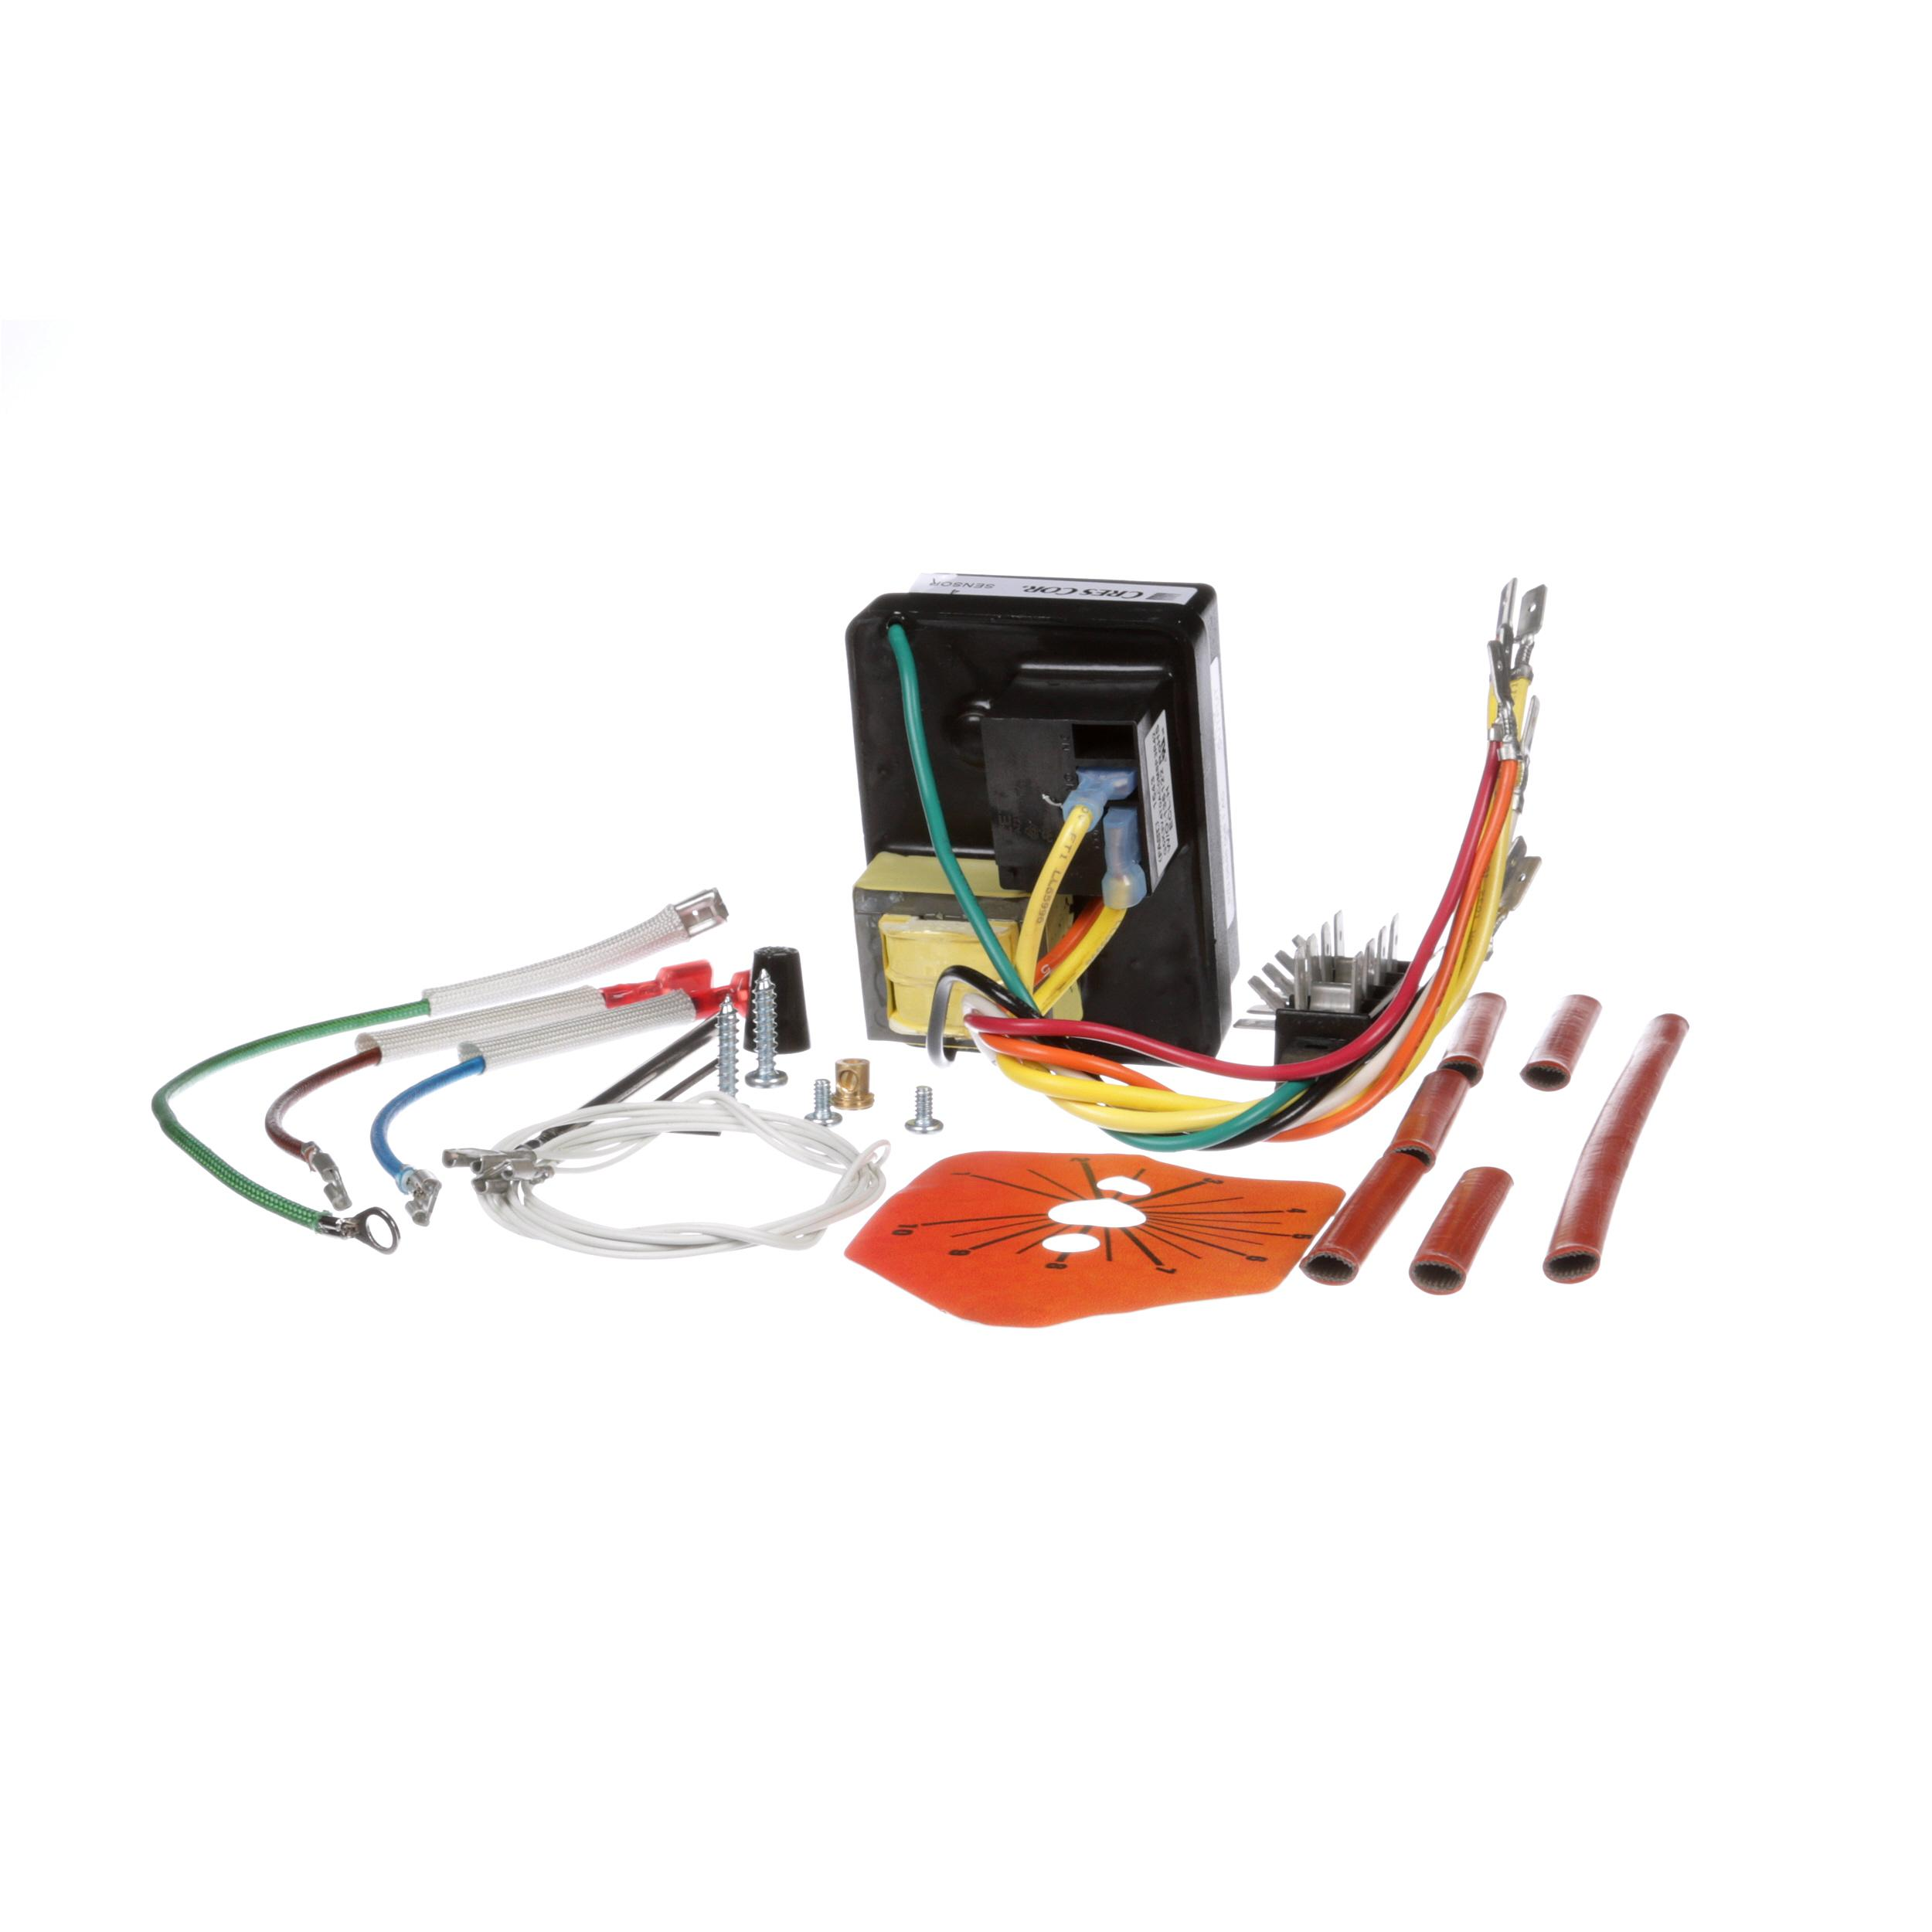 CRES COR THERMOSTAT CONVERSION KIT